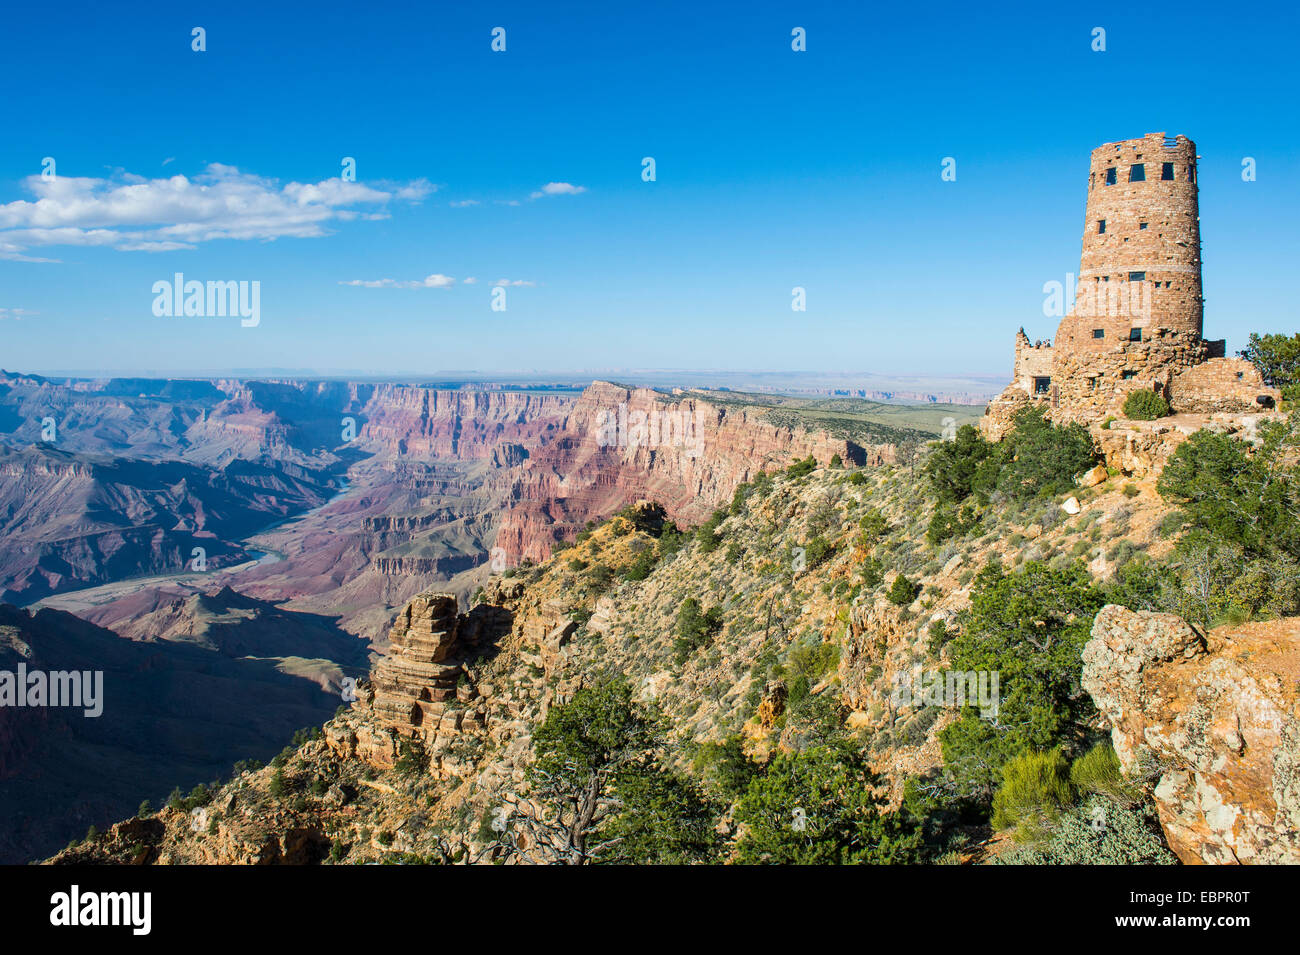 Desert view stone tower on top of the south rim of the Grand Canyon, UNESCO World Heritage Site, Arizona, USA - Stock Image